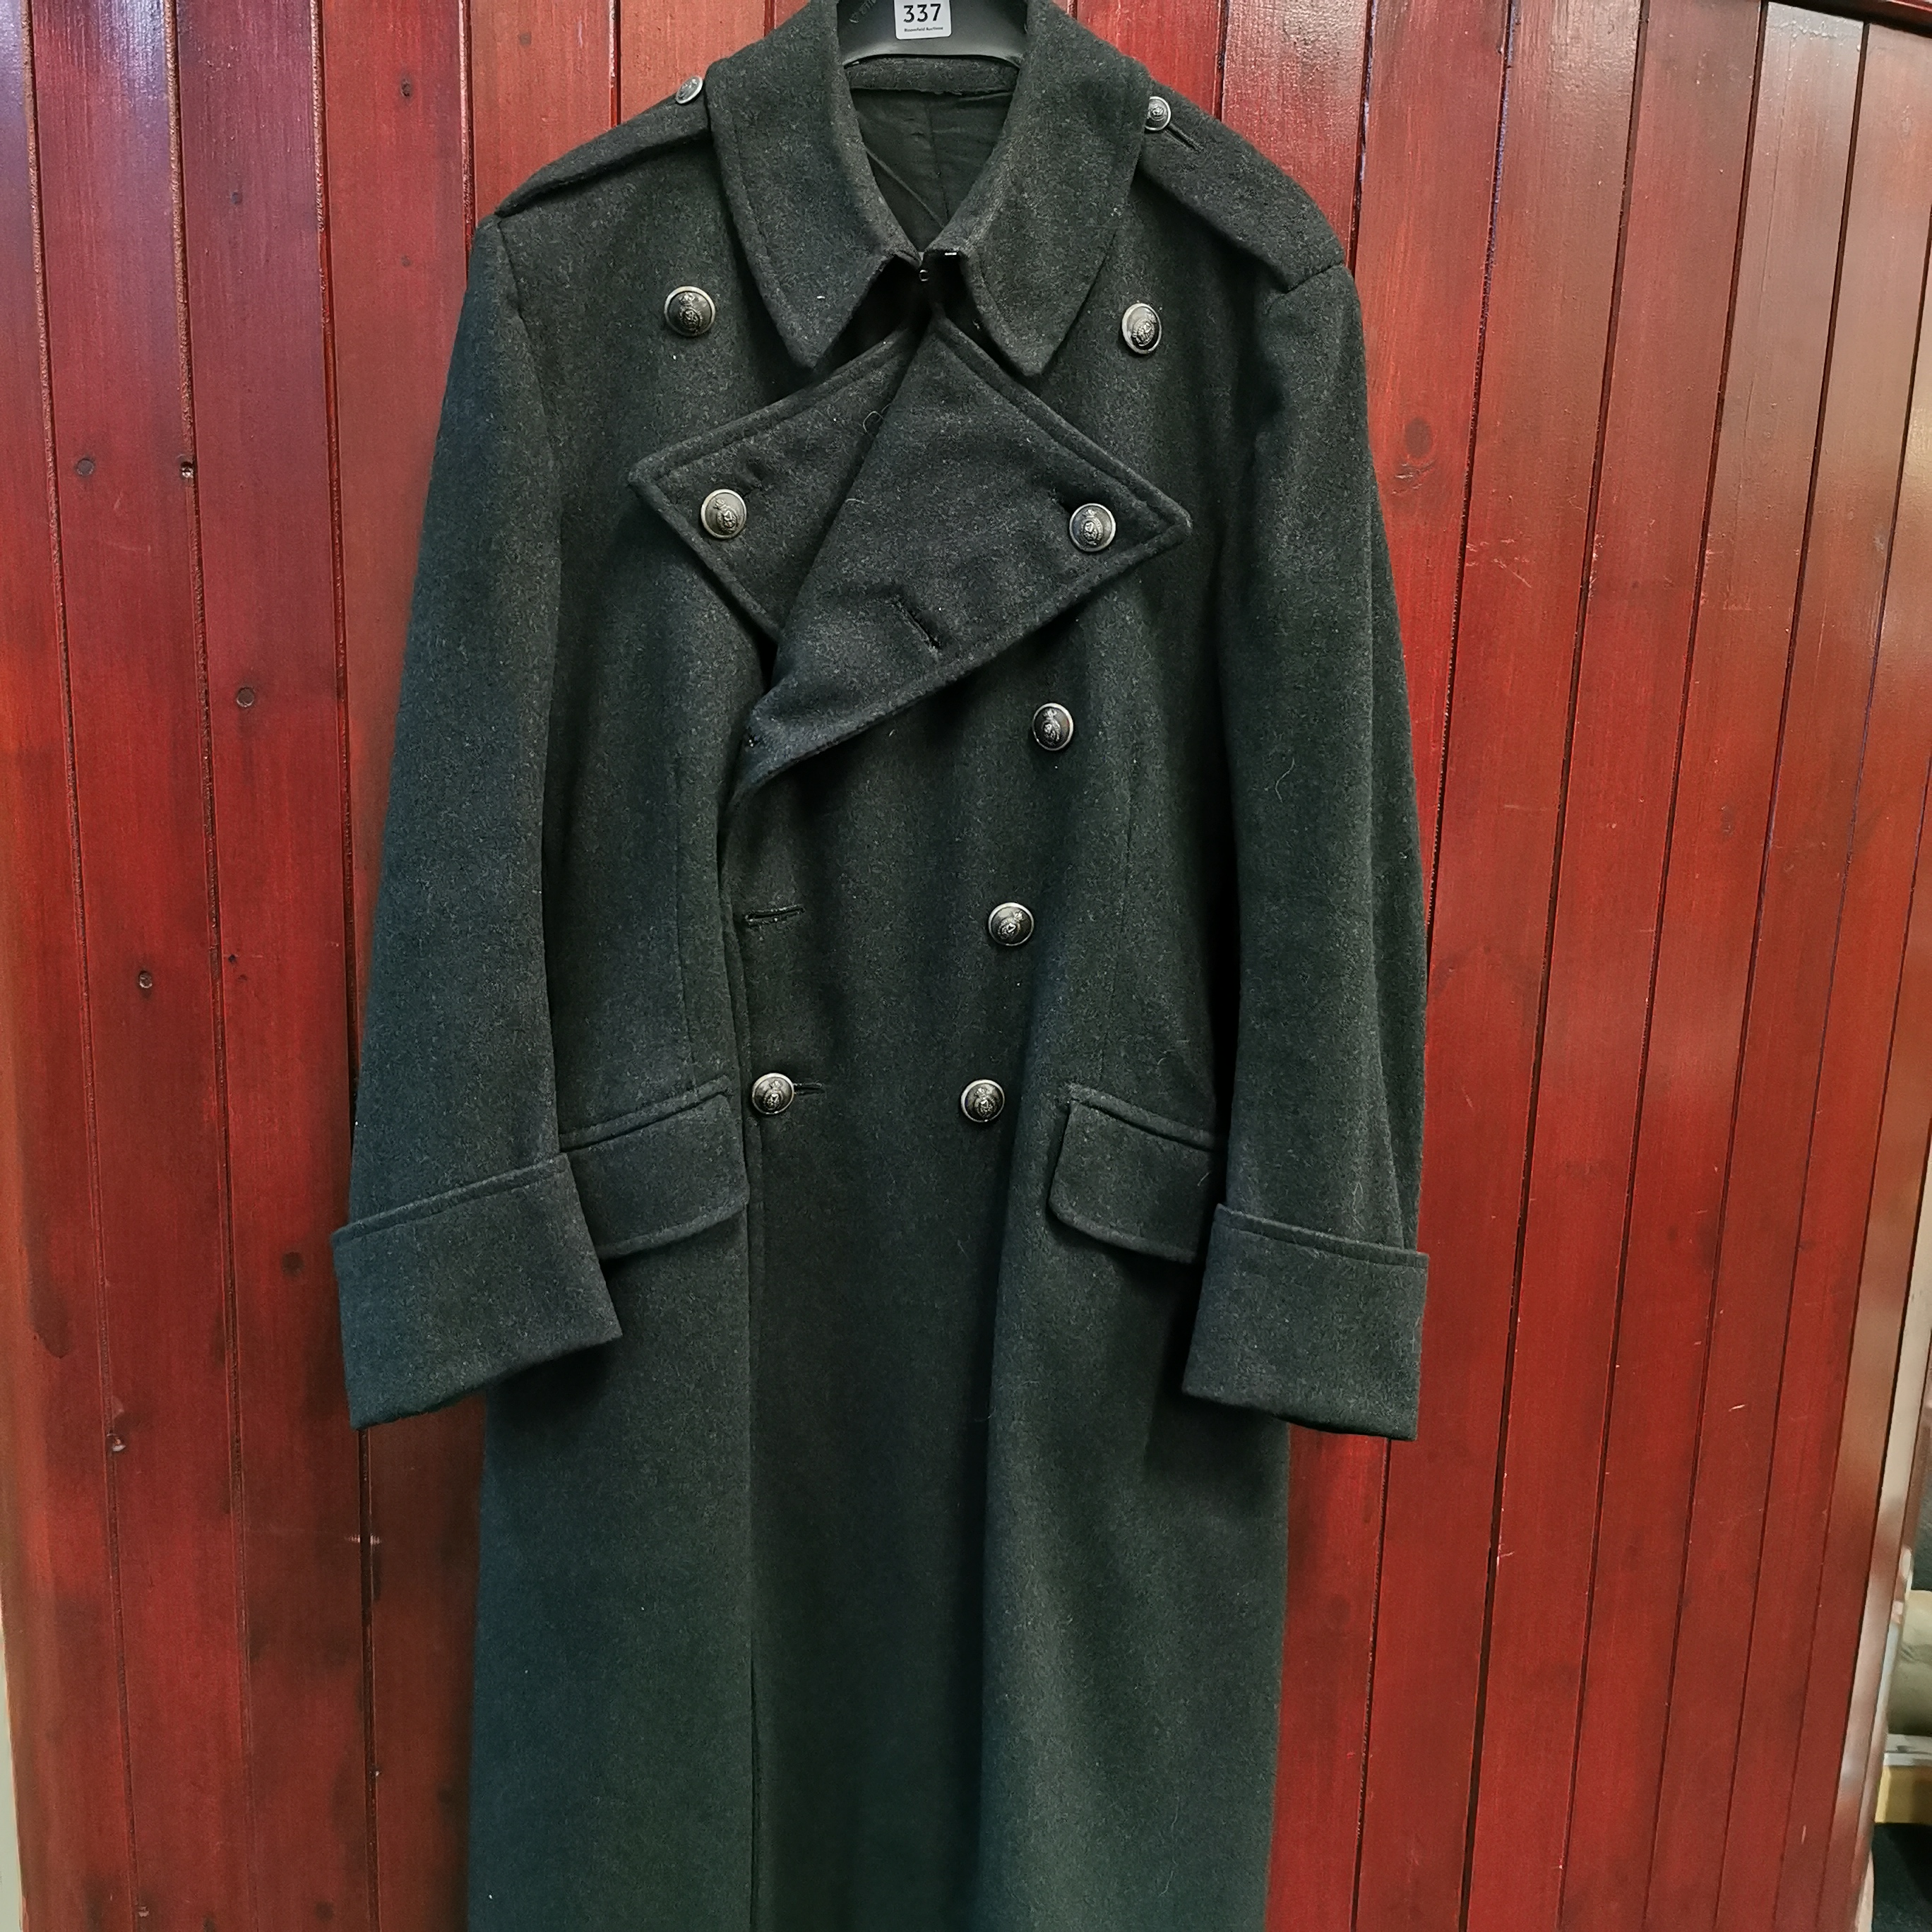 Lot 337 - RUC GREAT COAT